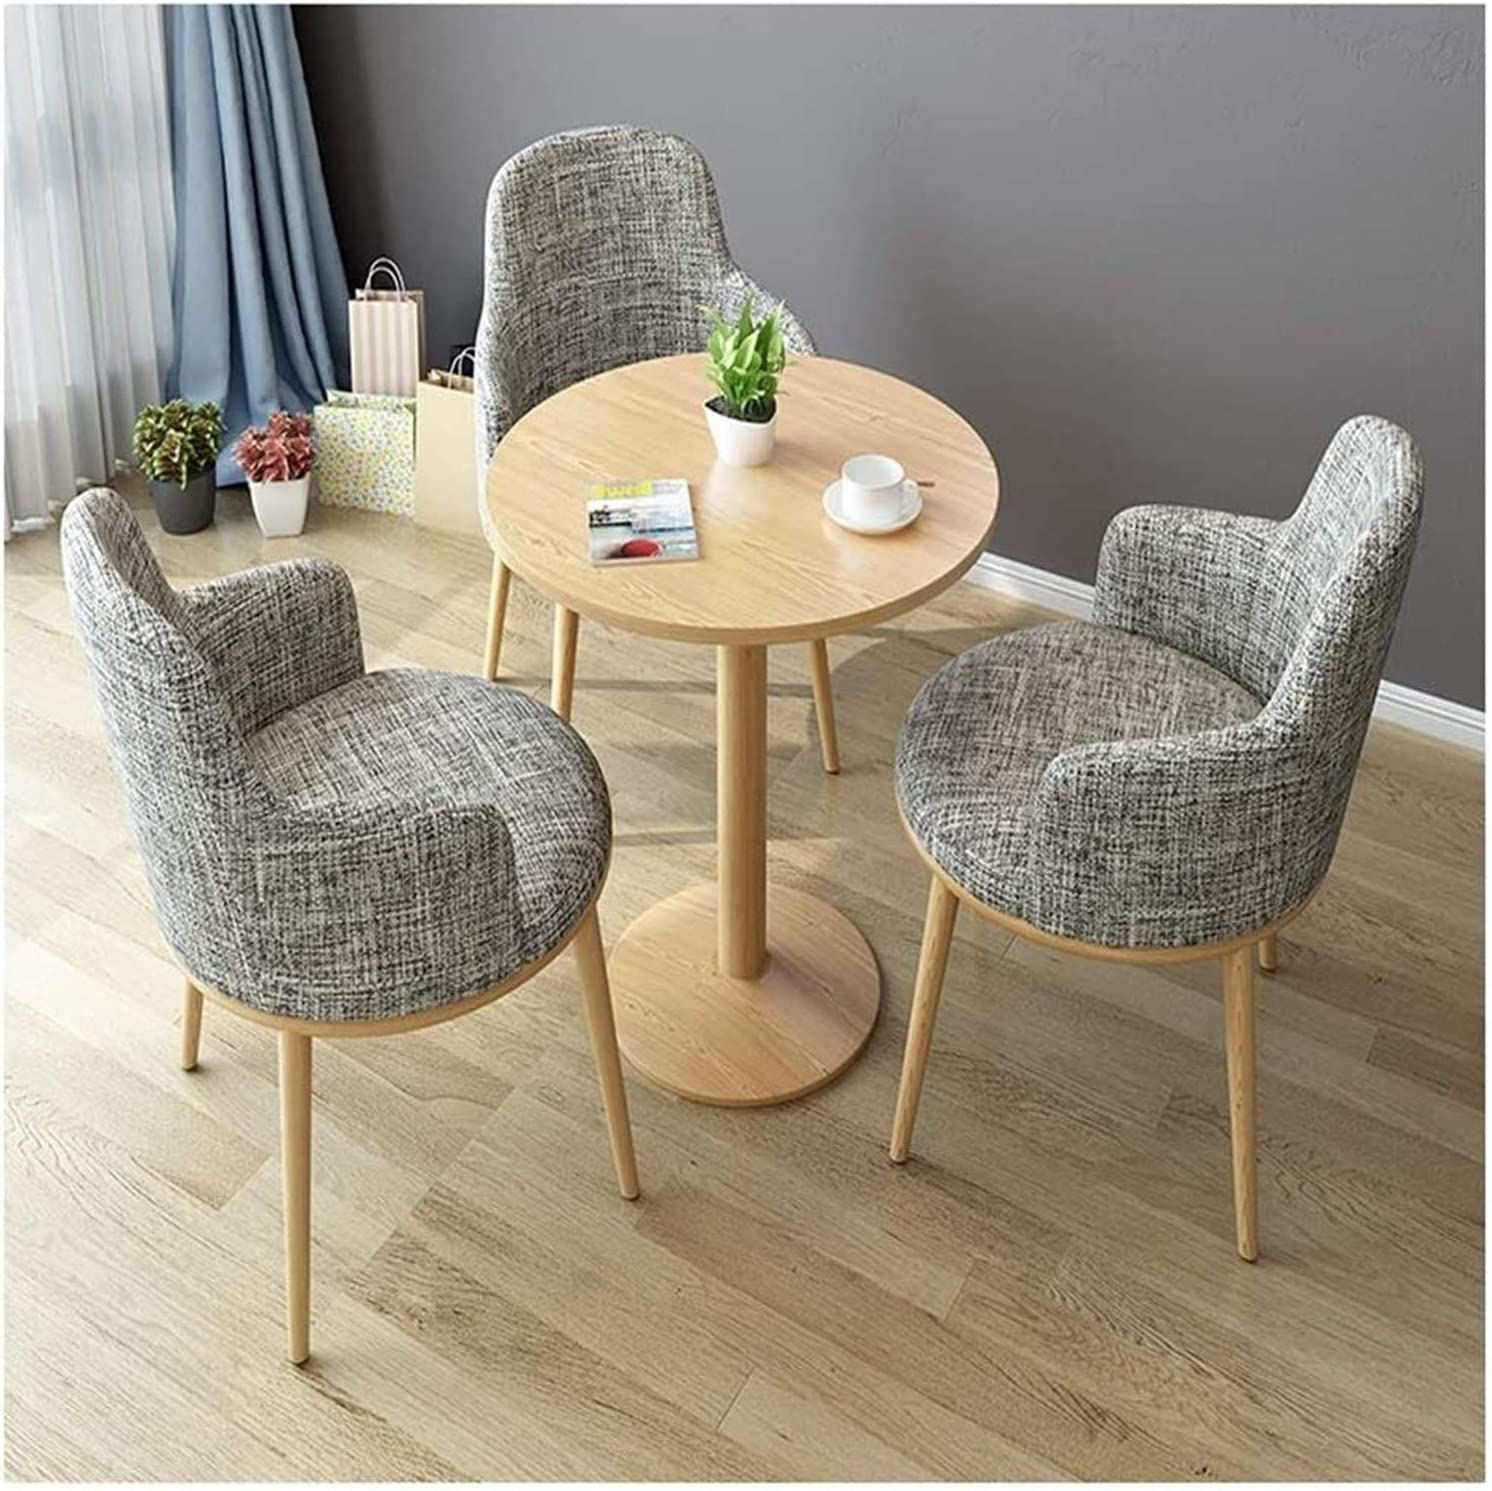 WANGLX Dining Table Set for and Max 45% OFF Hotel Recep Room Kitchen New Orleans Mall